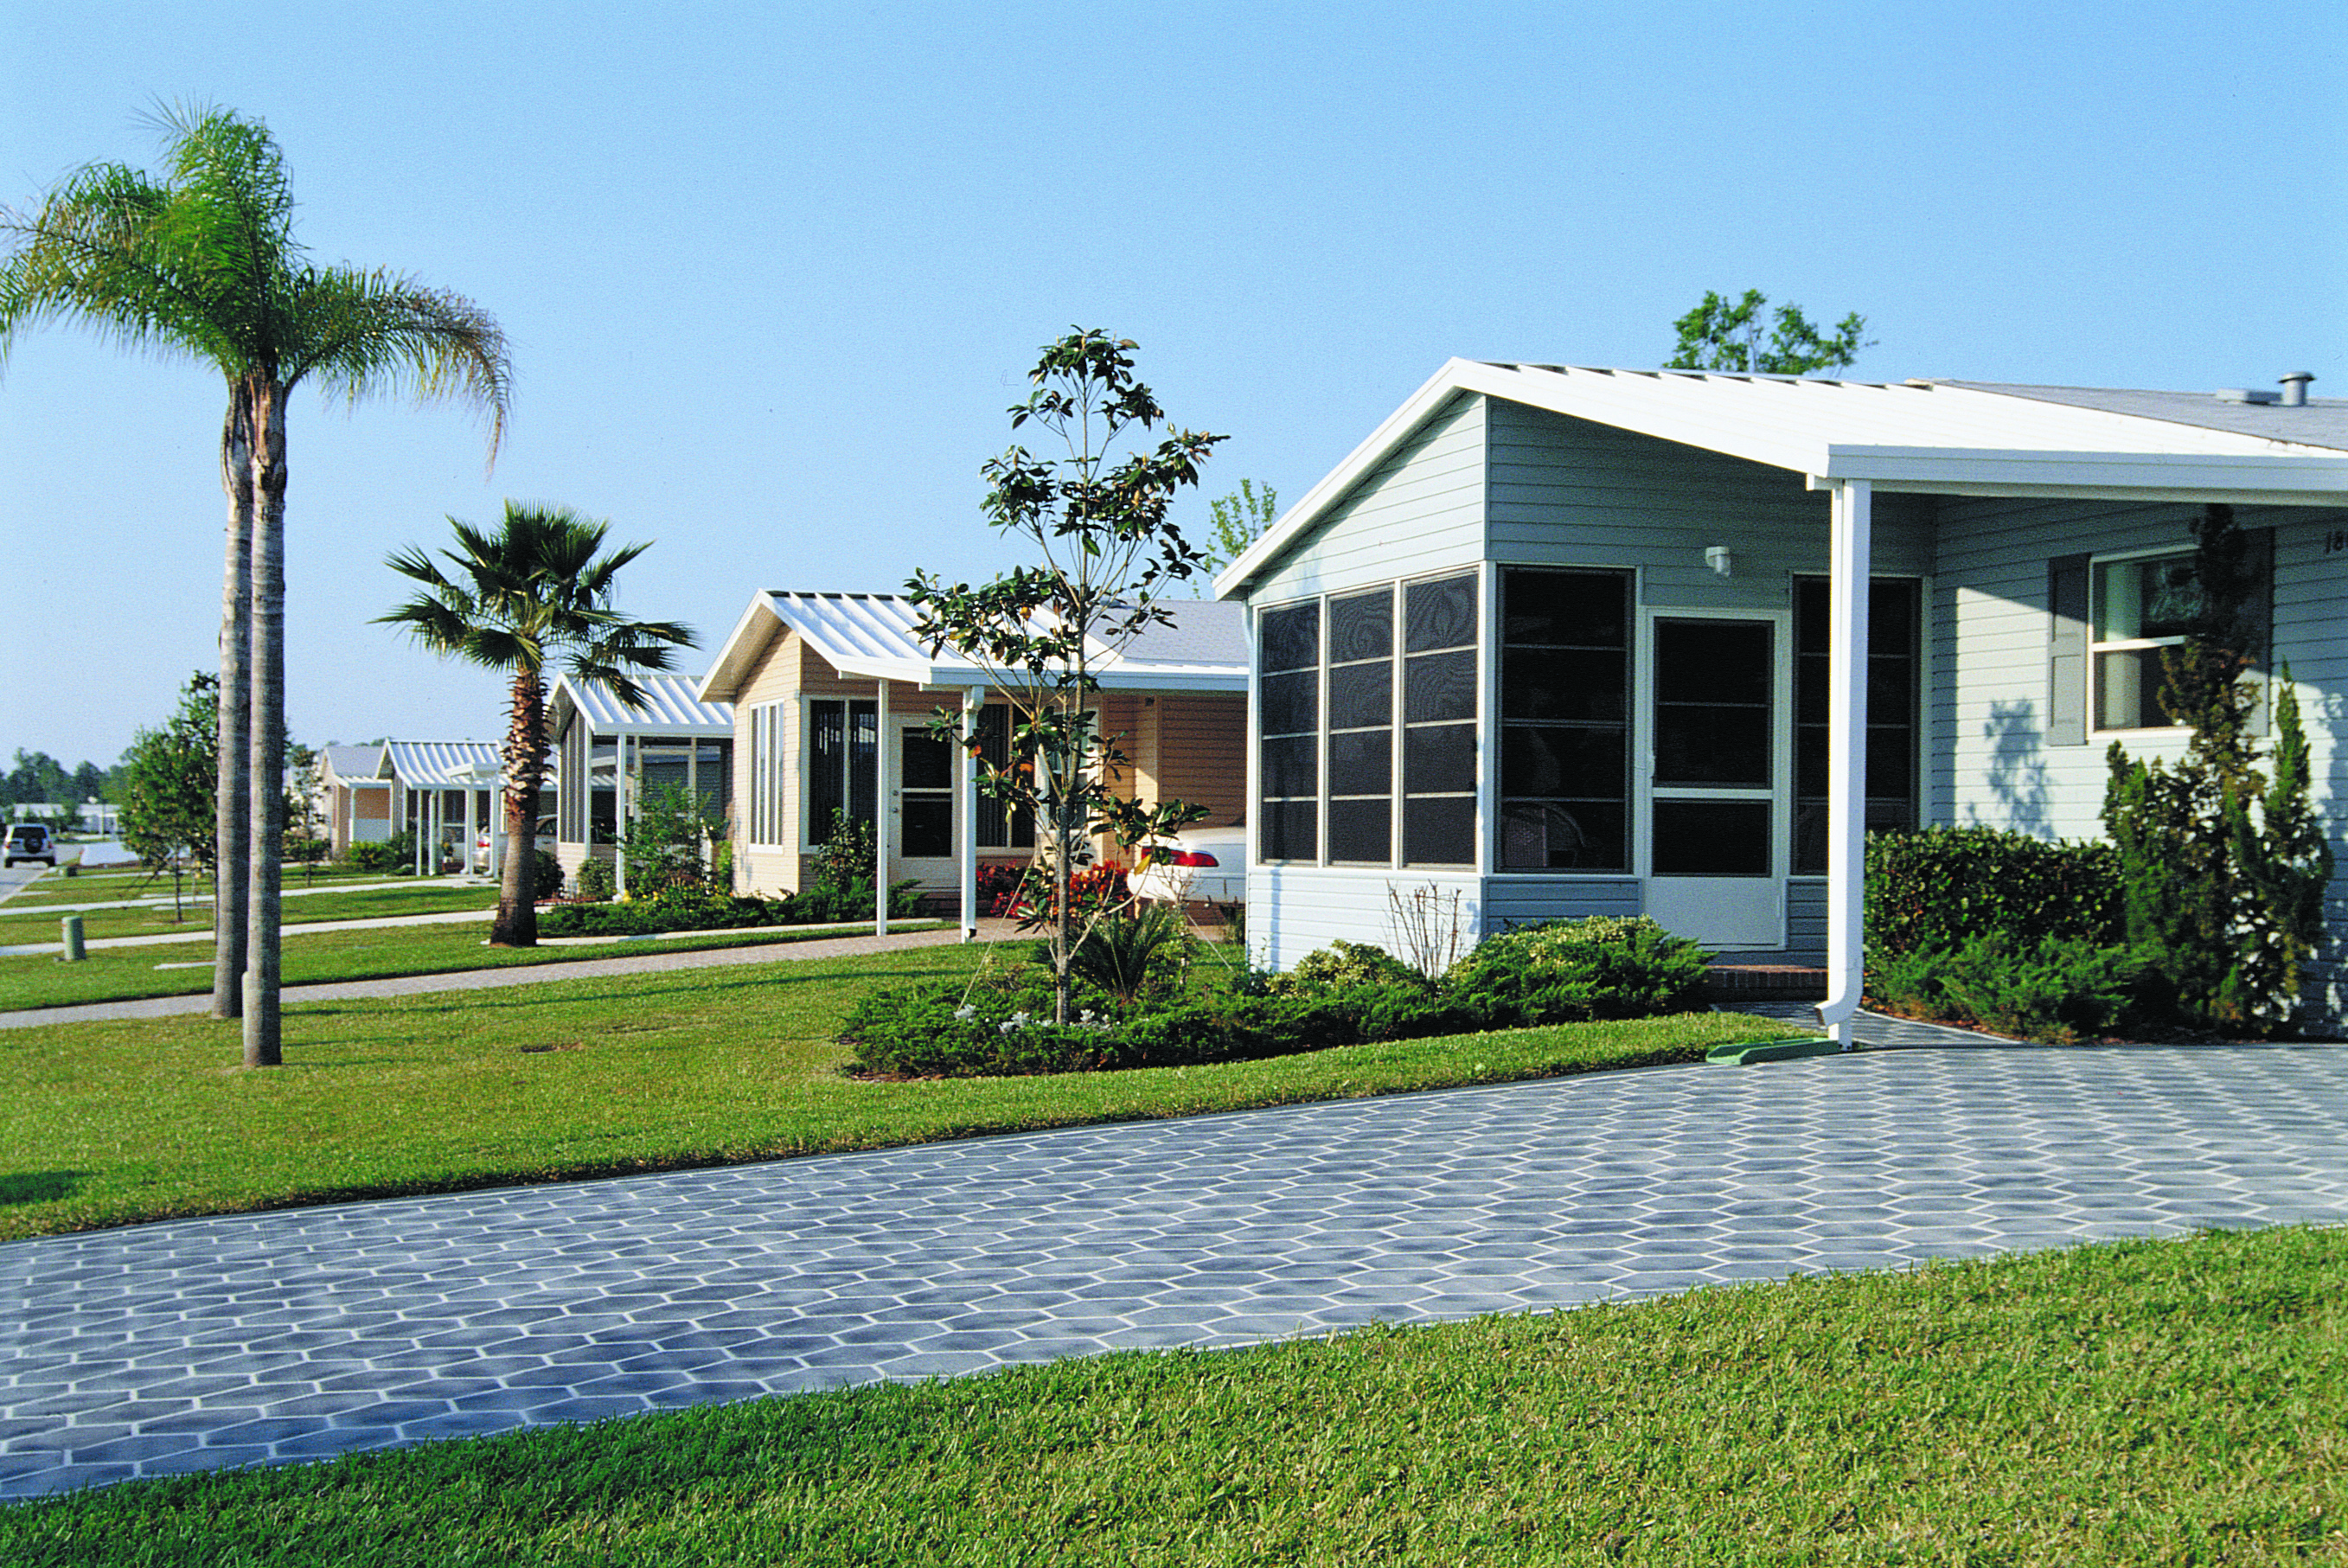 Why Manufactured Home Communities are On the Rise